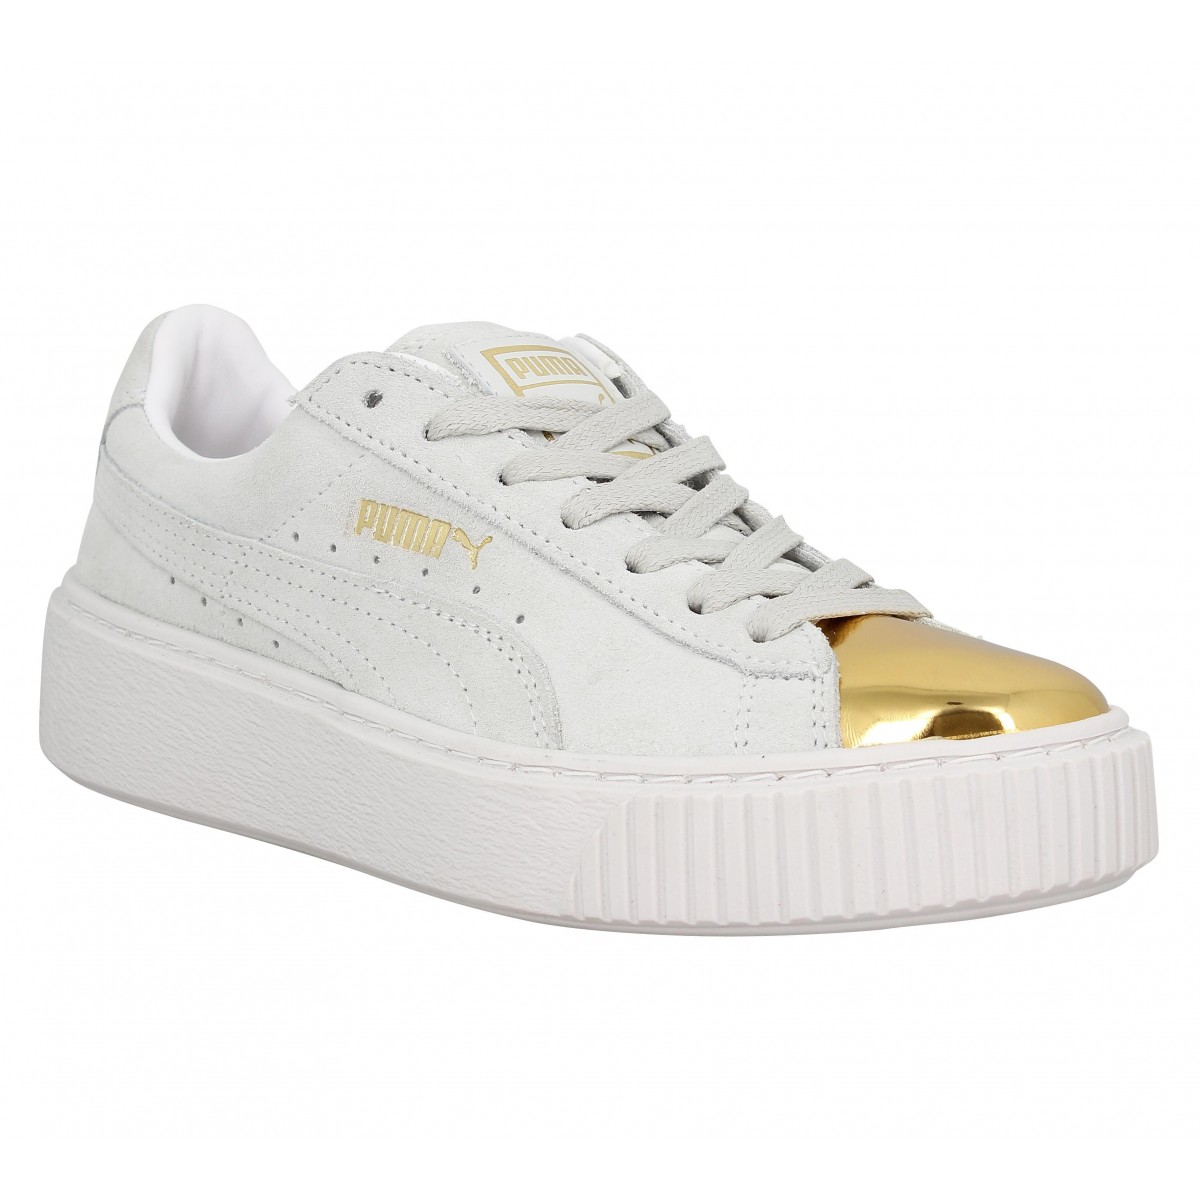 puma suede femme blanche et or